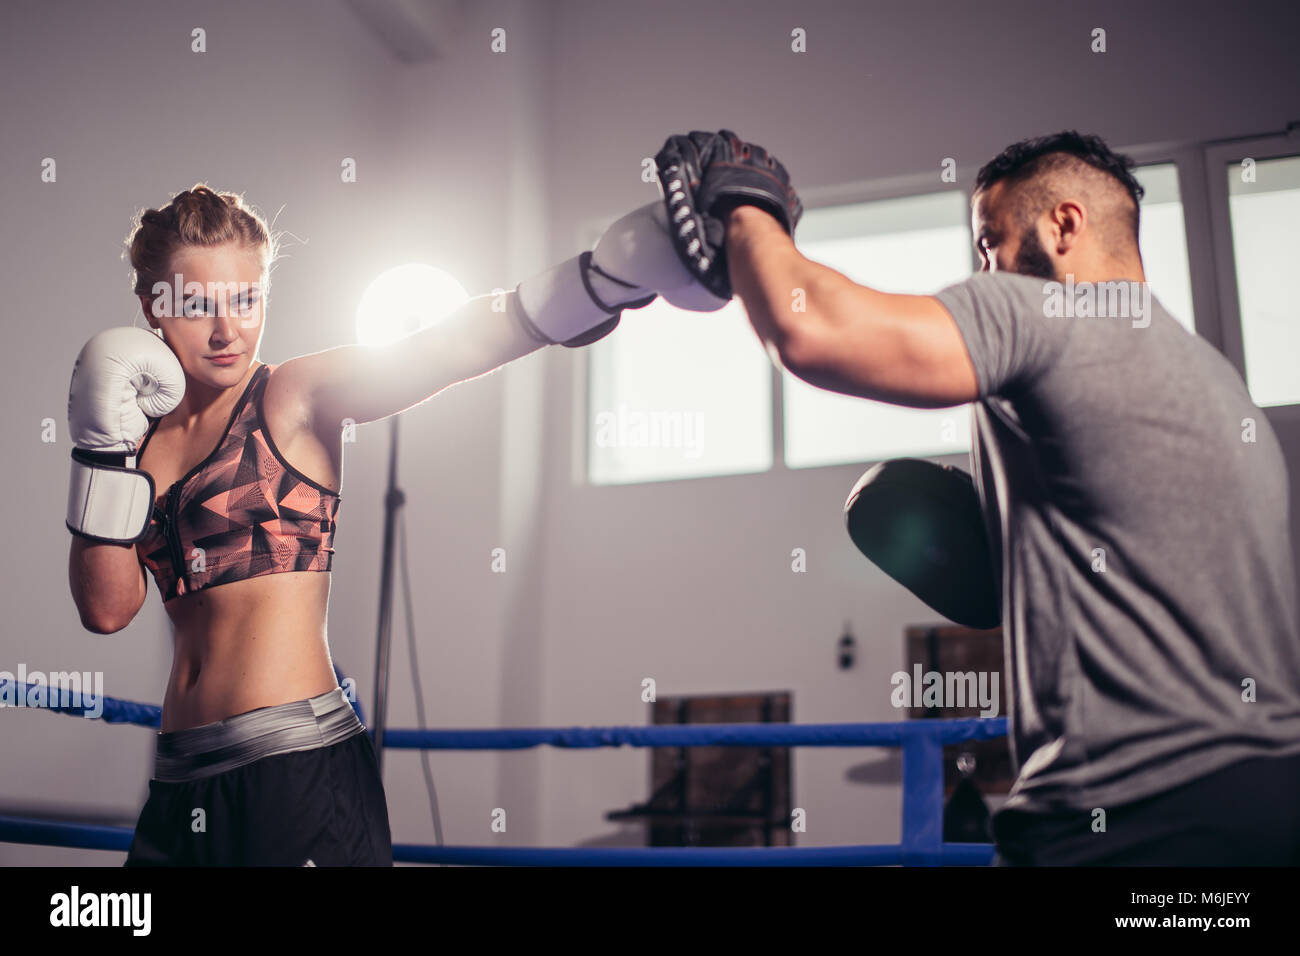 Boxing girl training on boxing mitts held by a master boxer - Stock Image